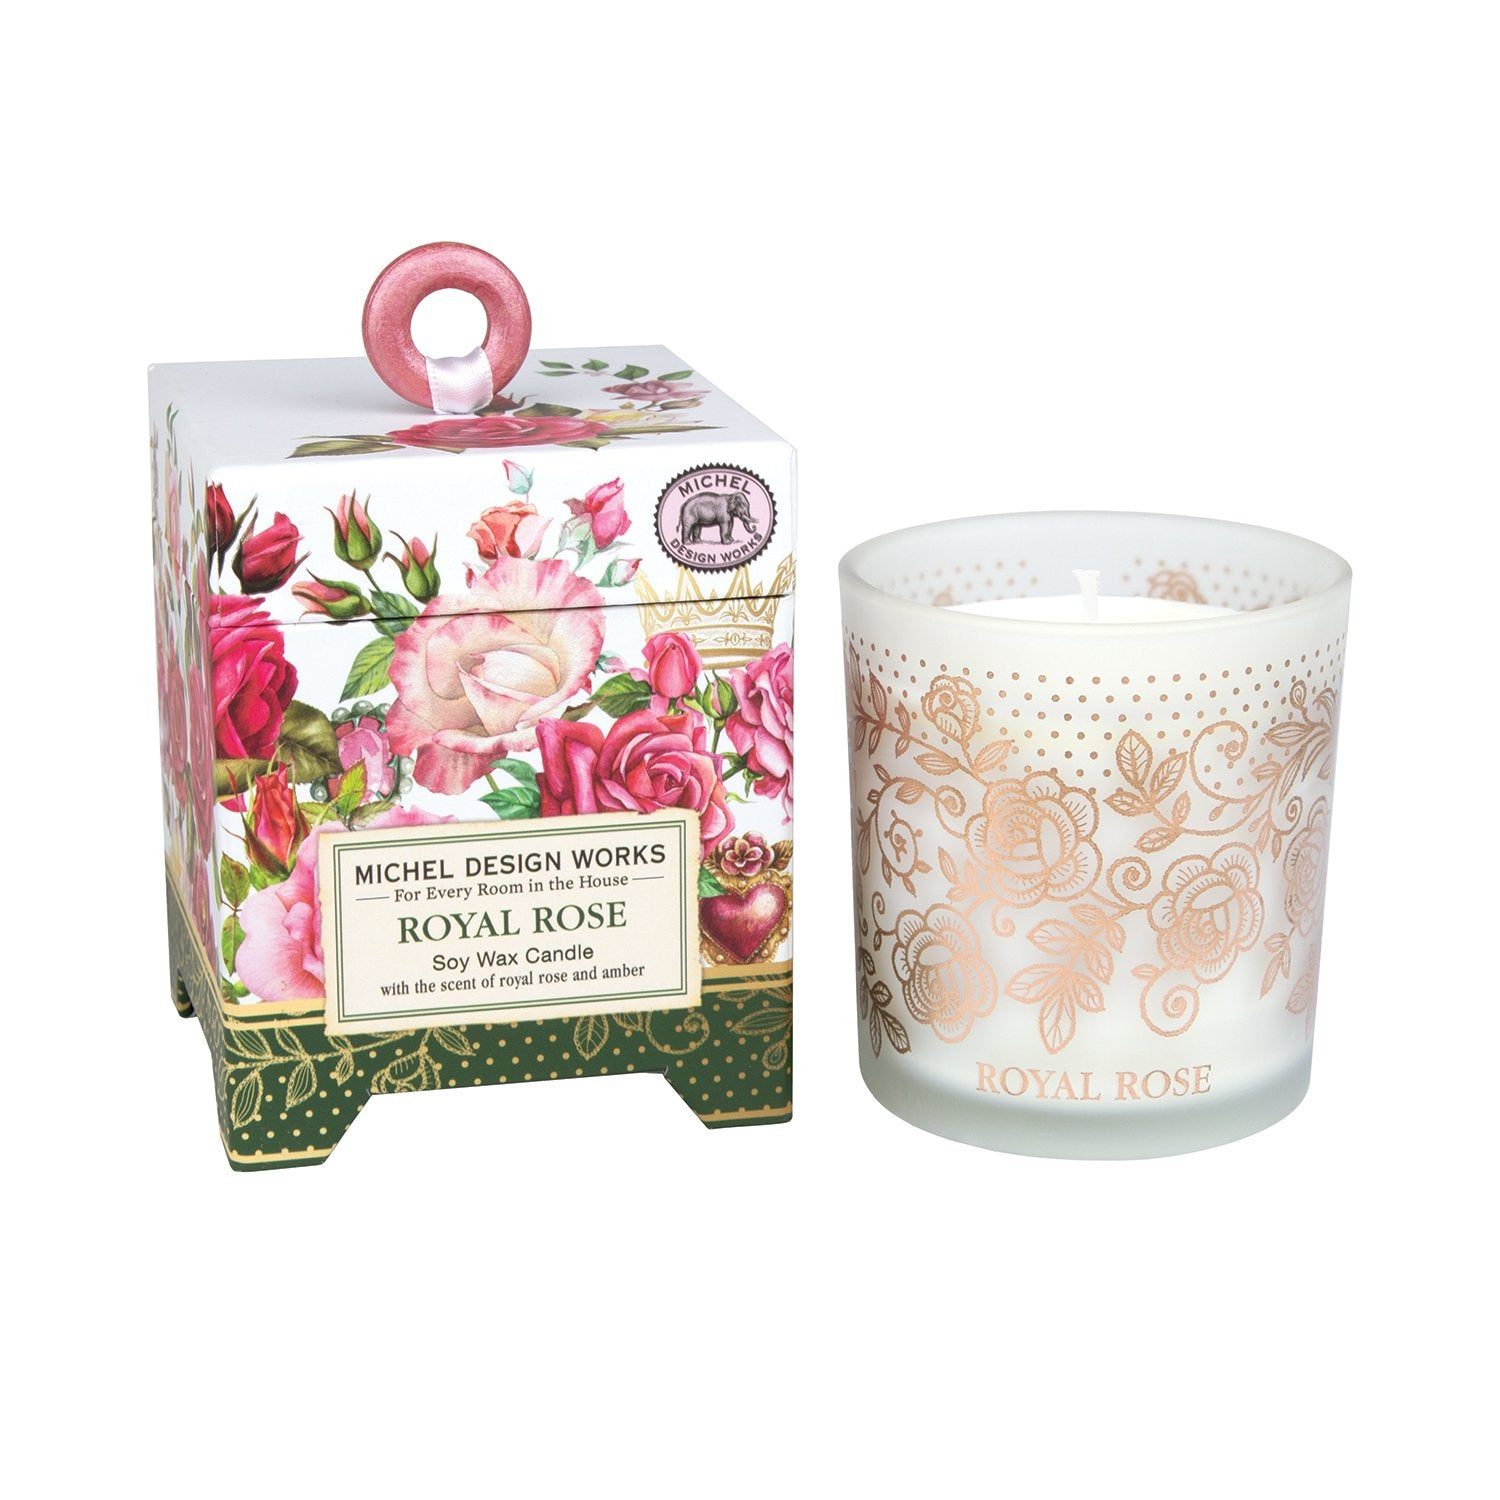 Royal Rose 6.5 oz. Soy Wax Candle